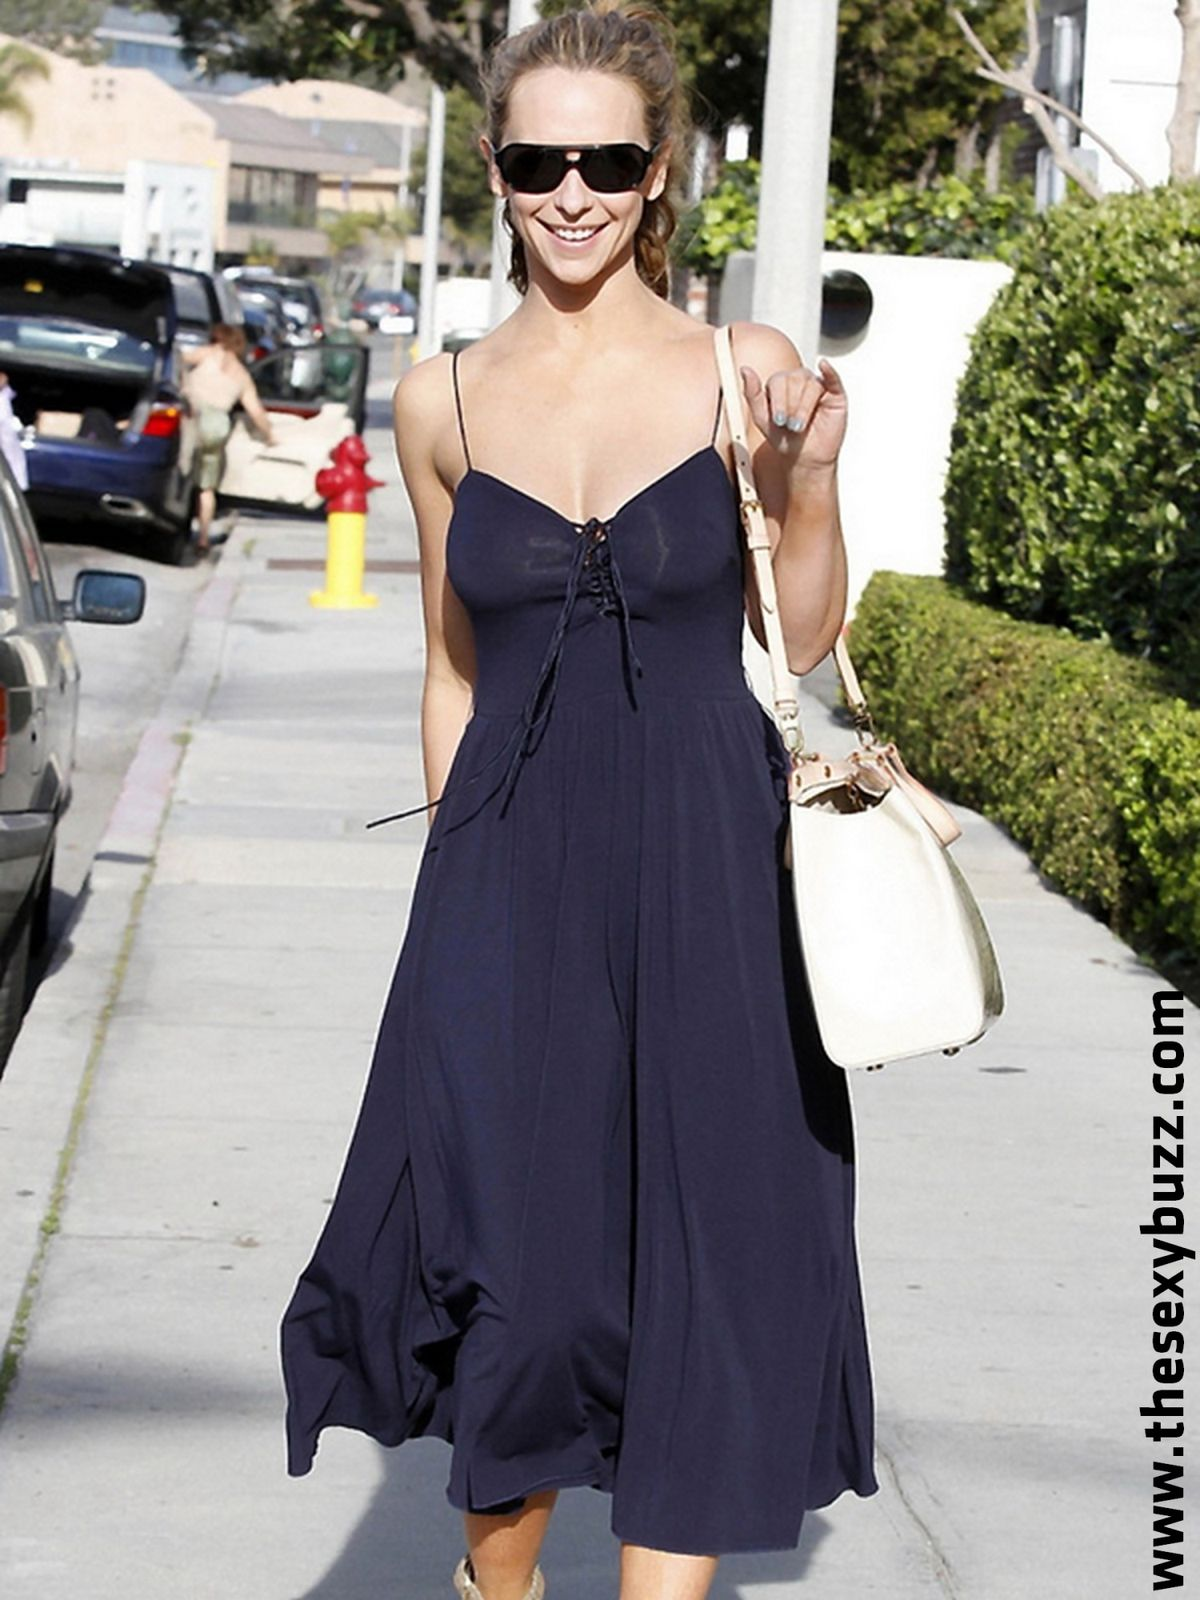 http://idata.over-blog.com/5/88/74/70/tsb23/etoiles/jennifer-love-hewitt-see-through-dress.jpg